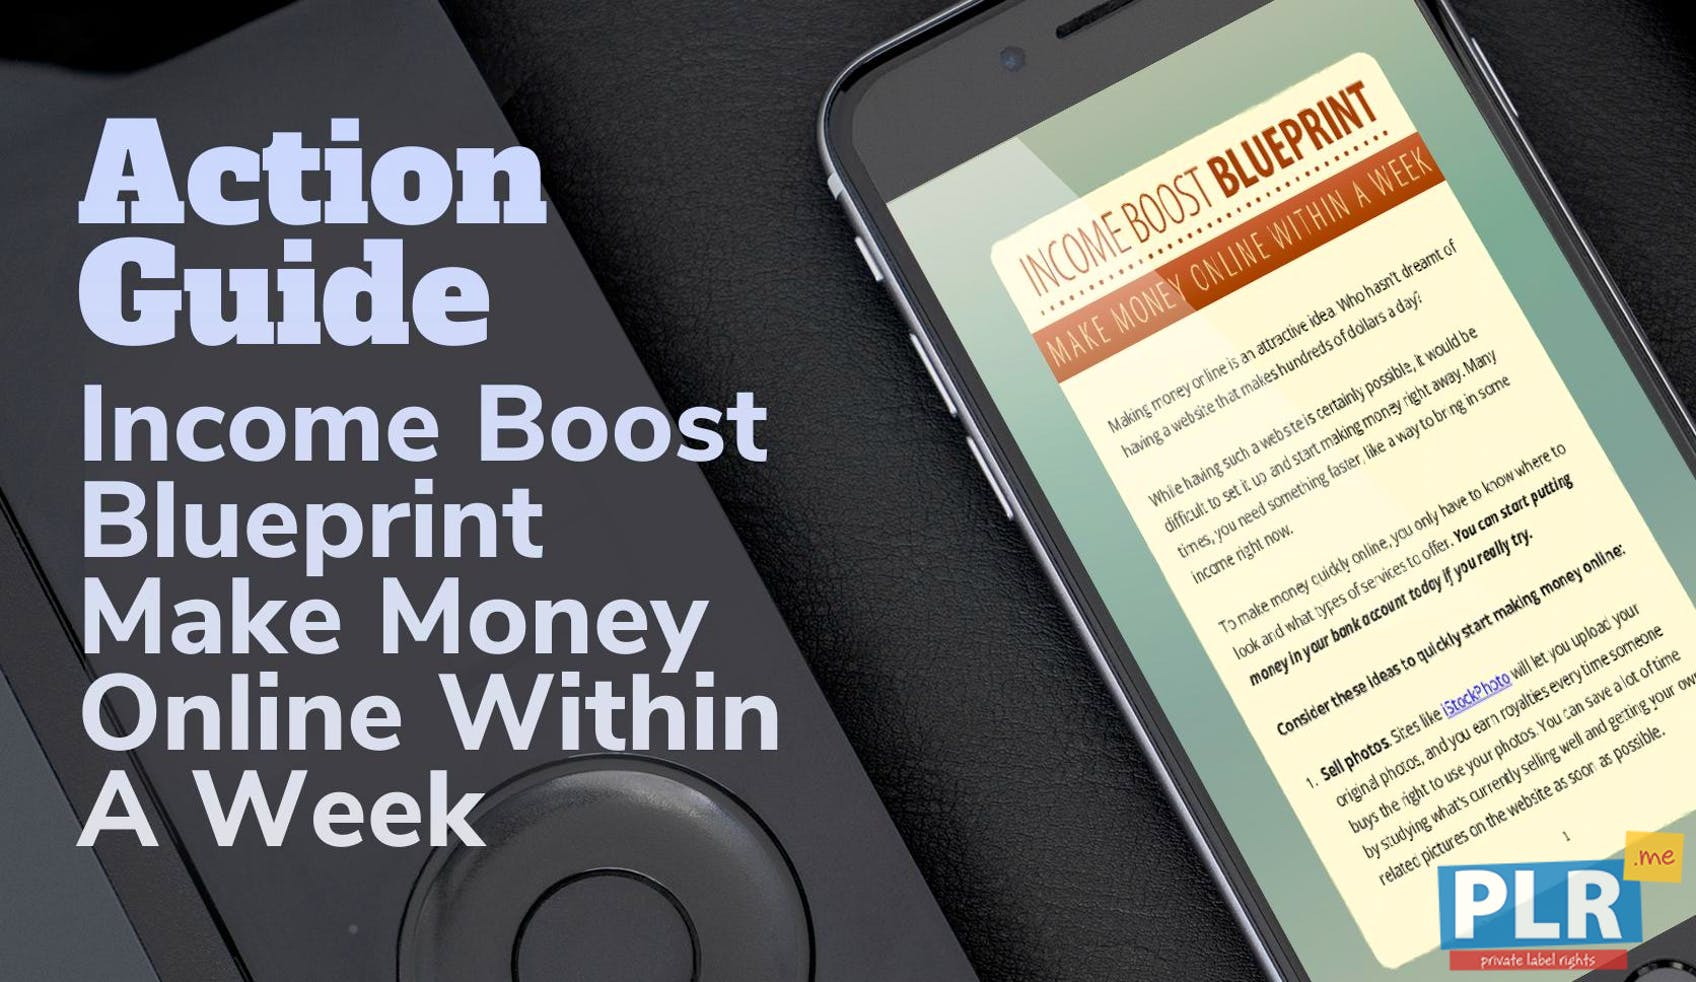 Plr action guides coaching handouts lead magnets income boost income boost blueprint make money online within a week malvernweather Choice Image